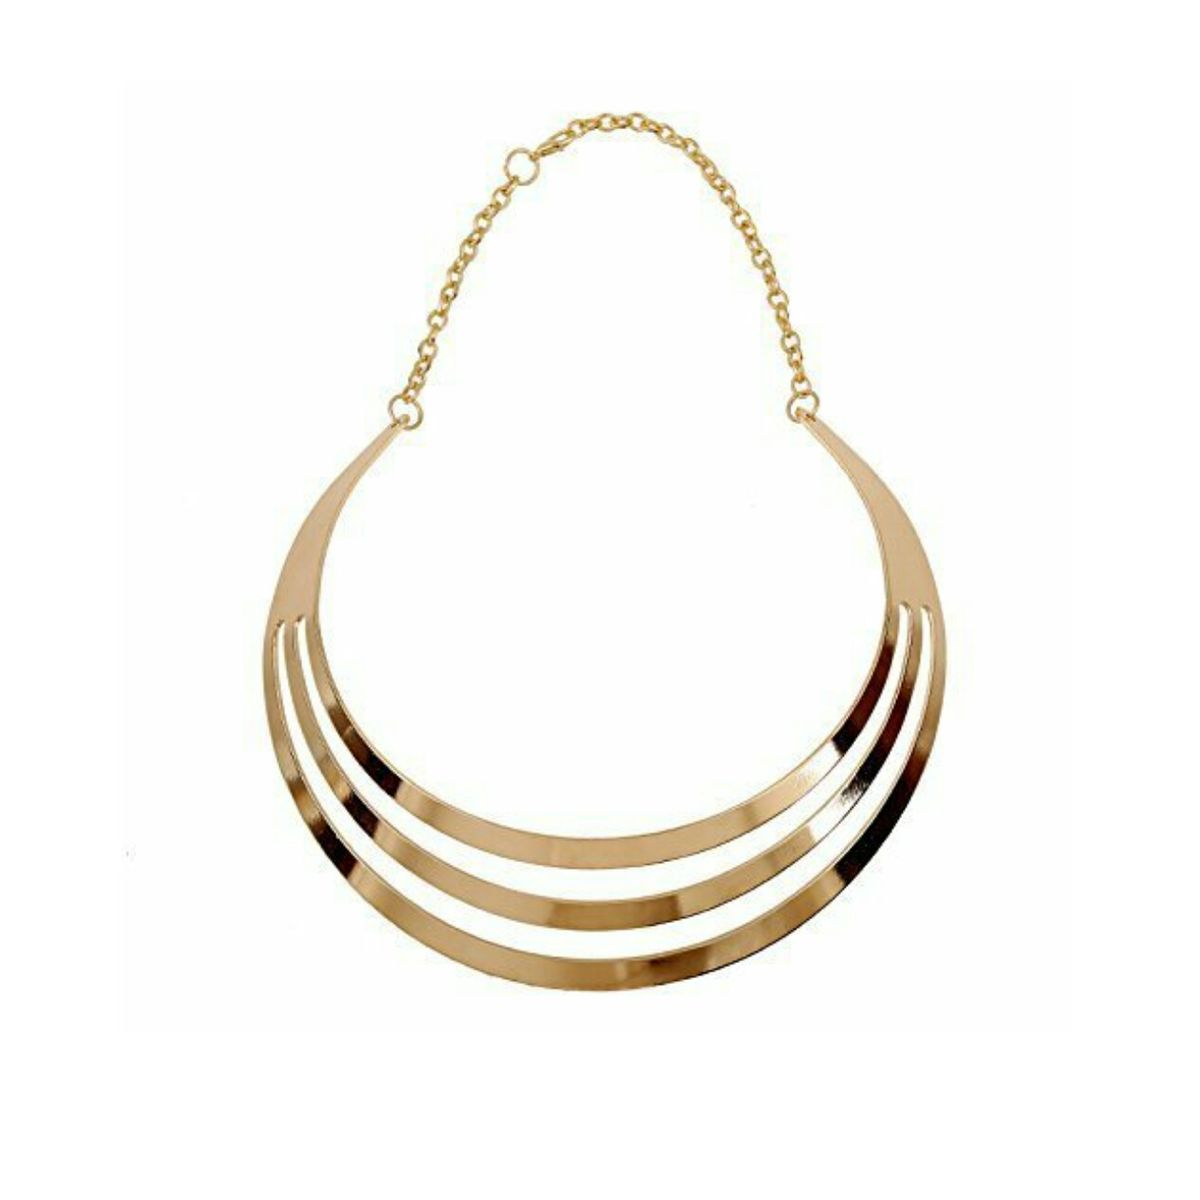 Golden Multilayered Classy Choker Adjustable Necklace